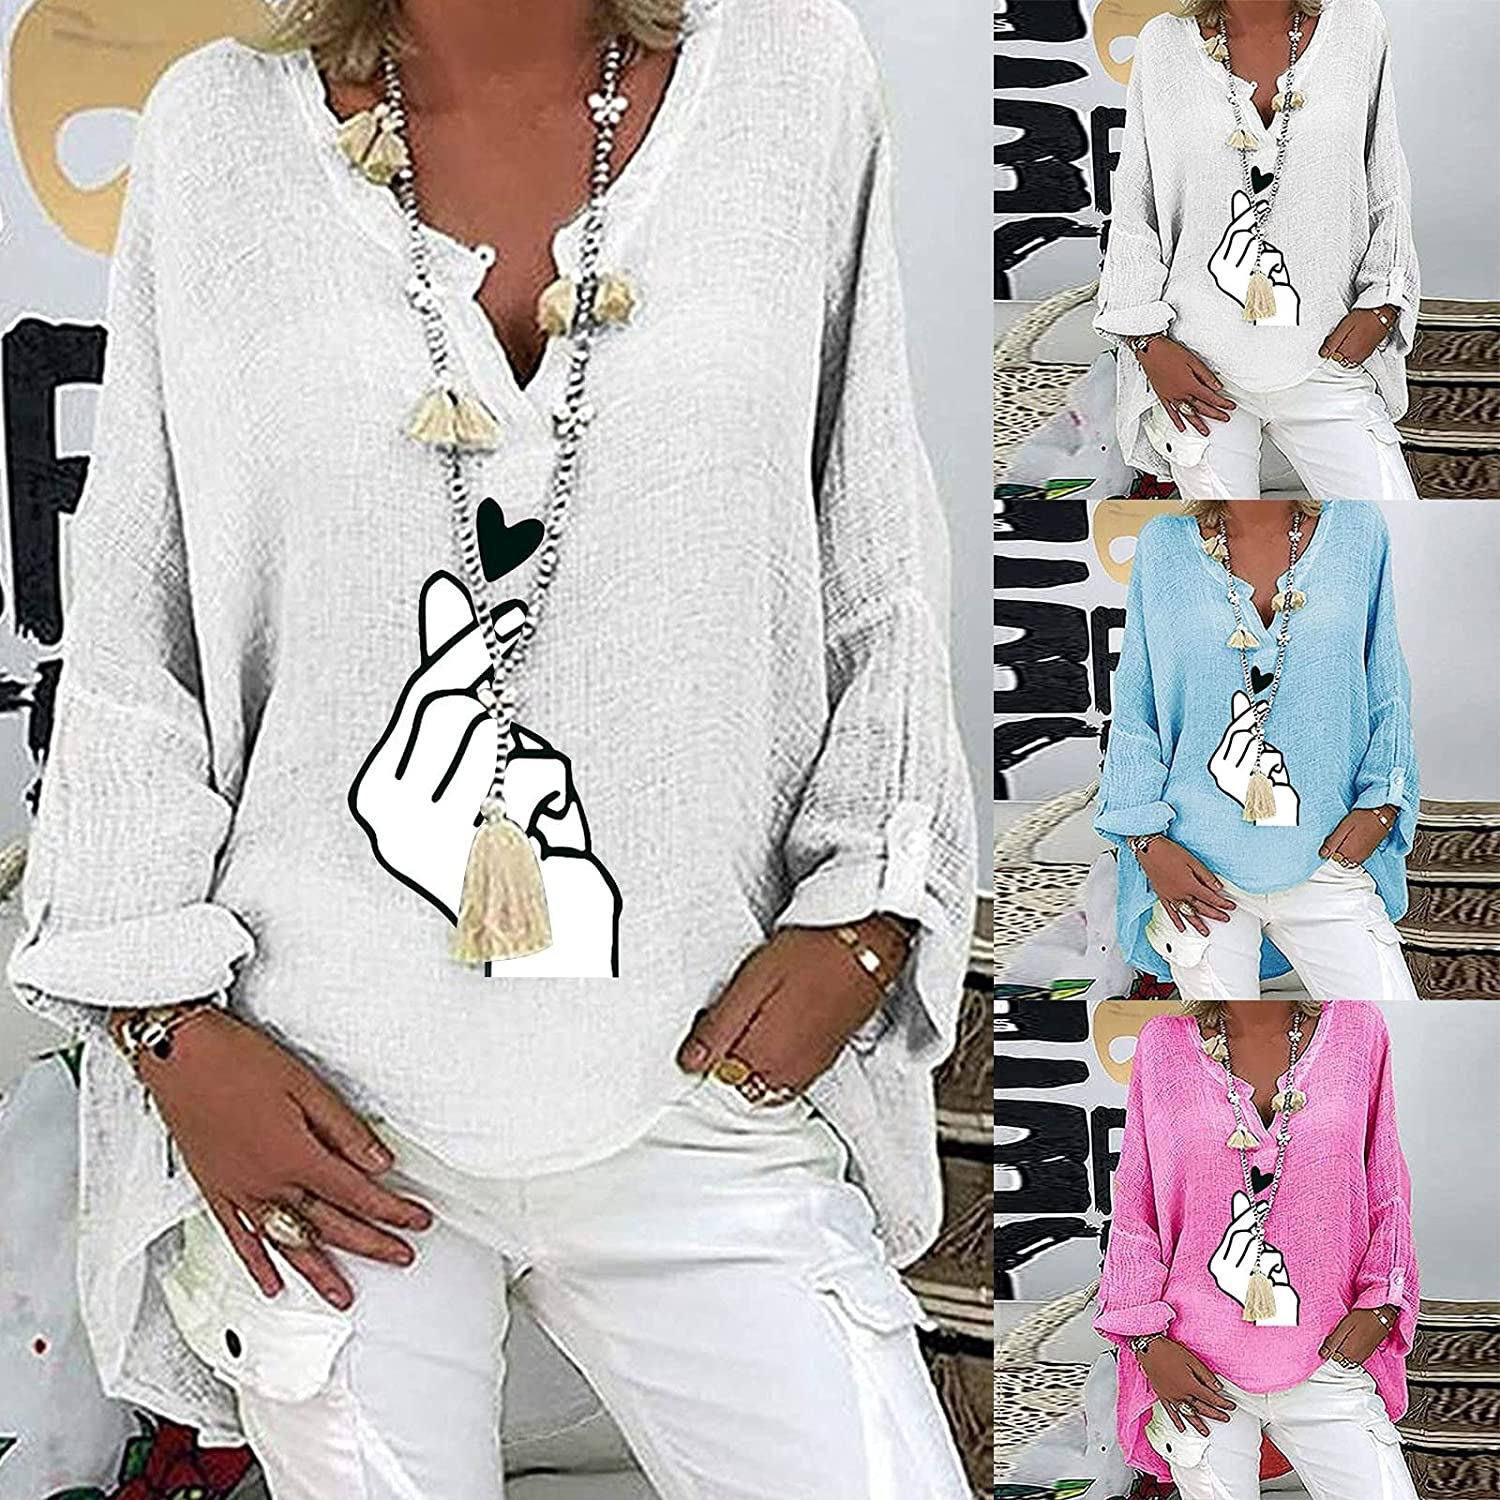 Plus Size Tops for Women Long Sleeve Tunic Tops Loose Fit Pullover Sweatshirts Fashion Print Fall Blouses